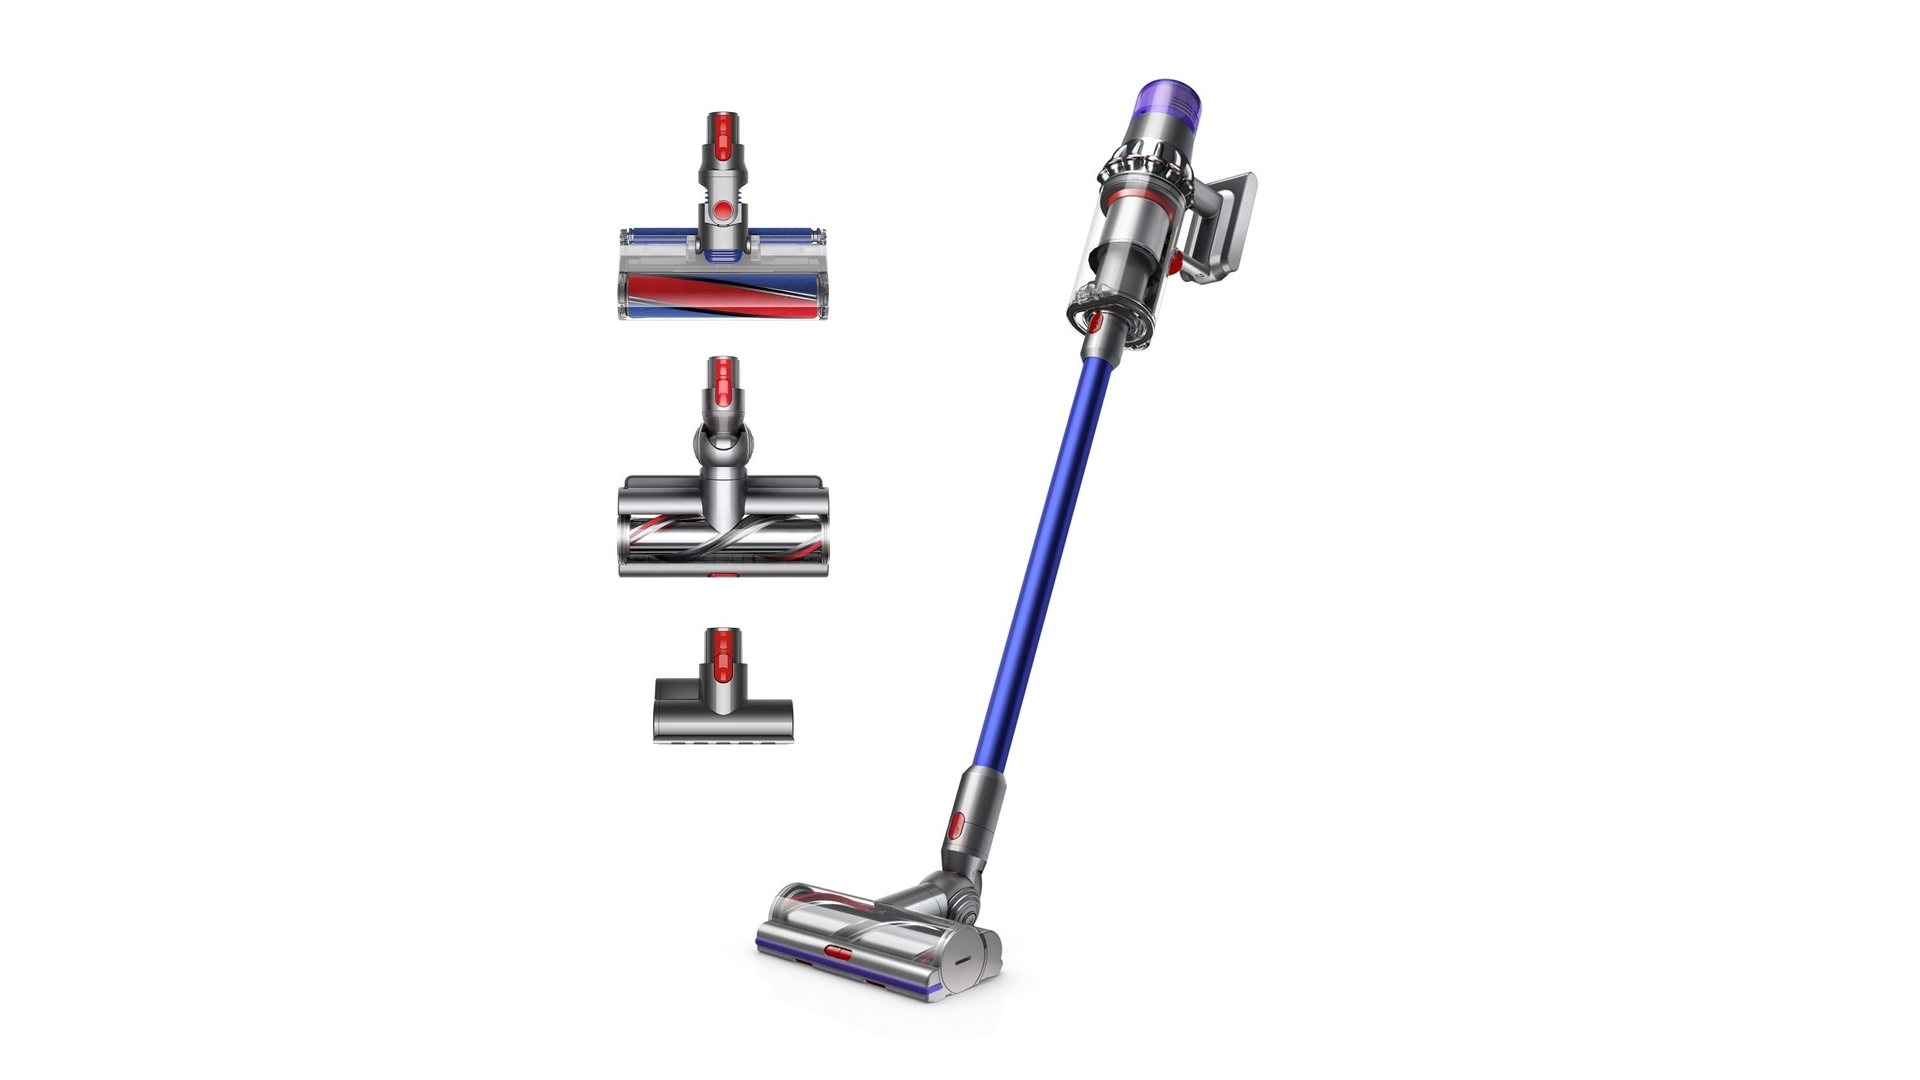 The cheapest Dyson sales, offers and deals for vacuum cleaners in May 2019